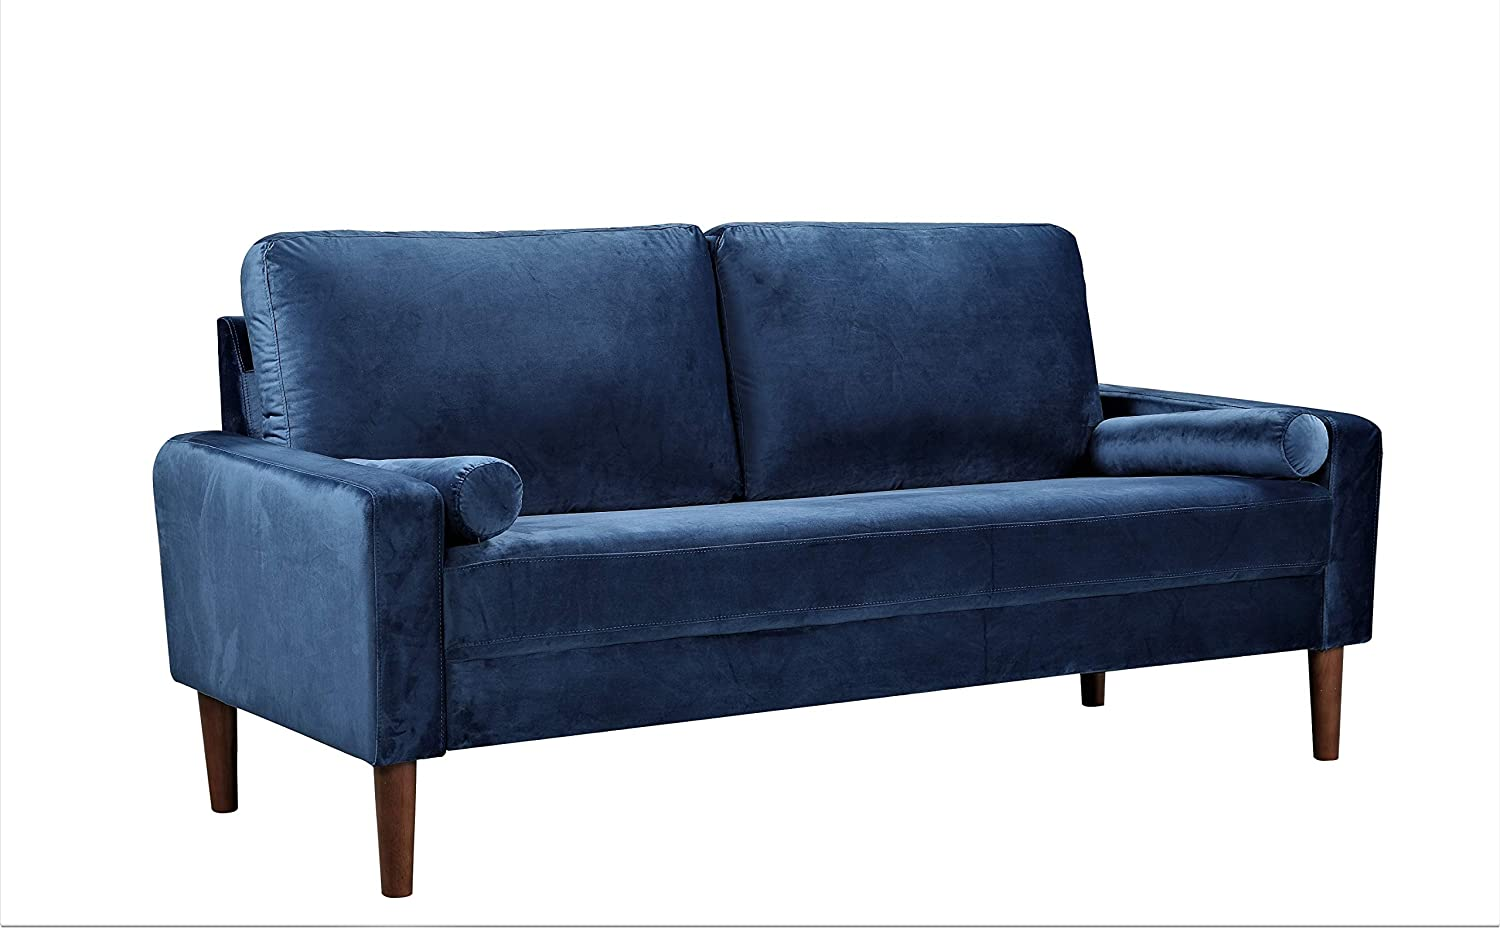 Amazon.com: US Pride Furniture S5523-S Sofas, Dark Blue ...